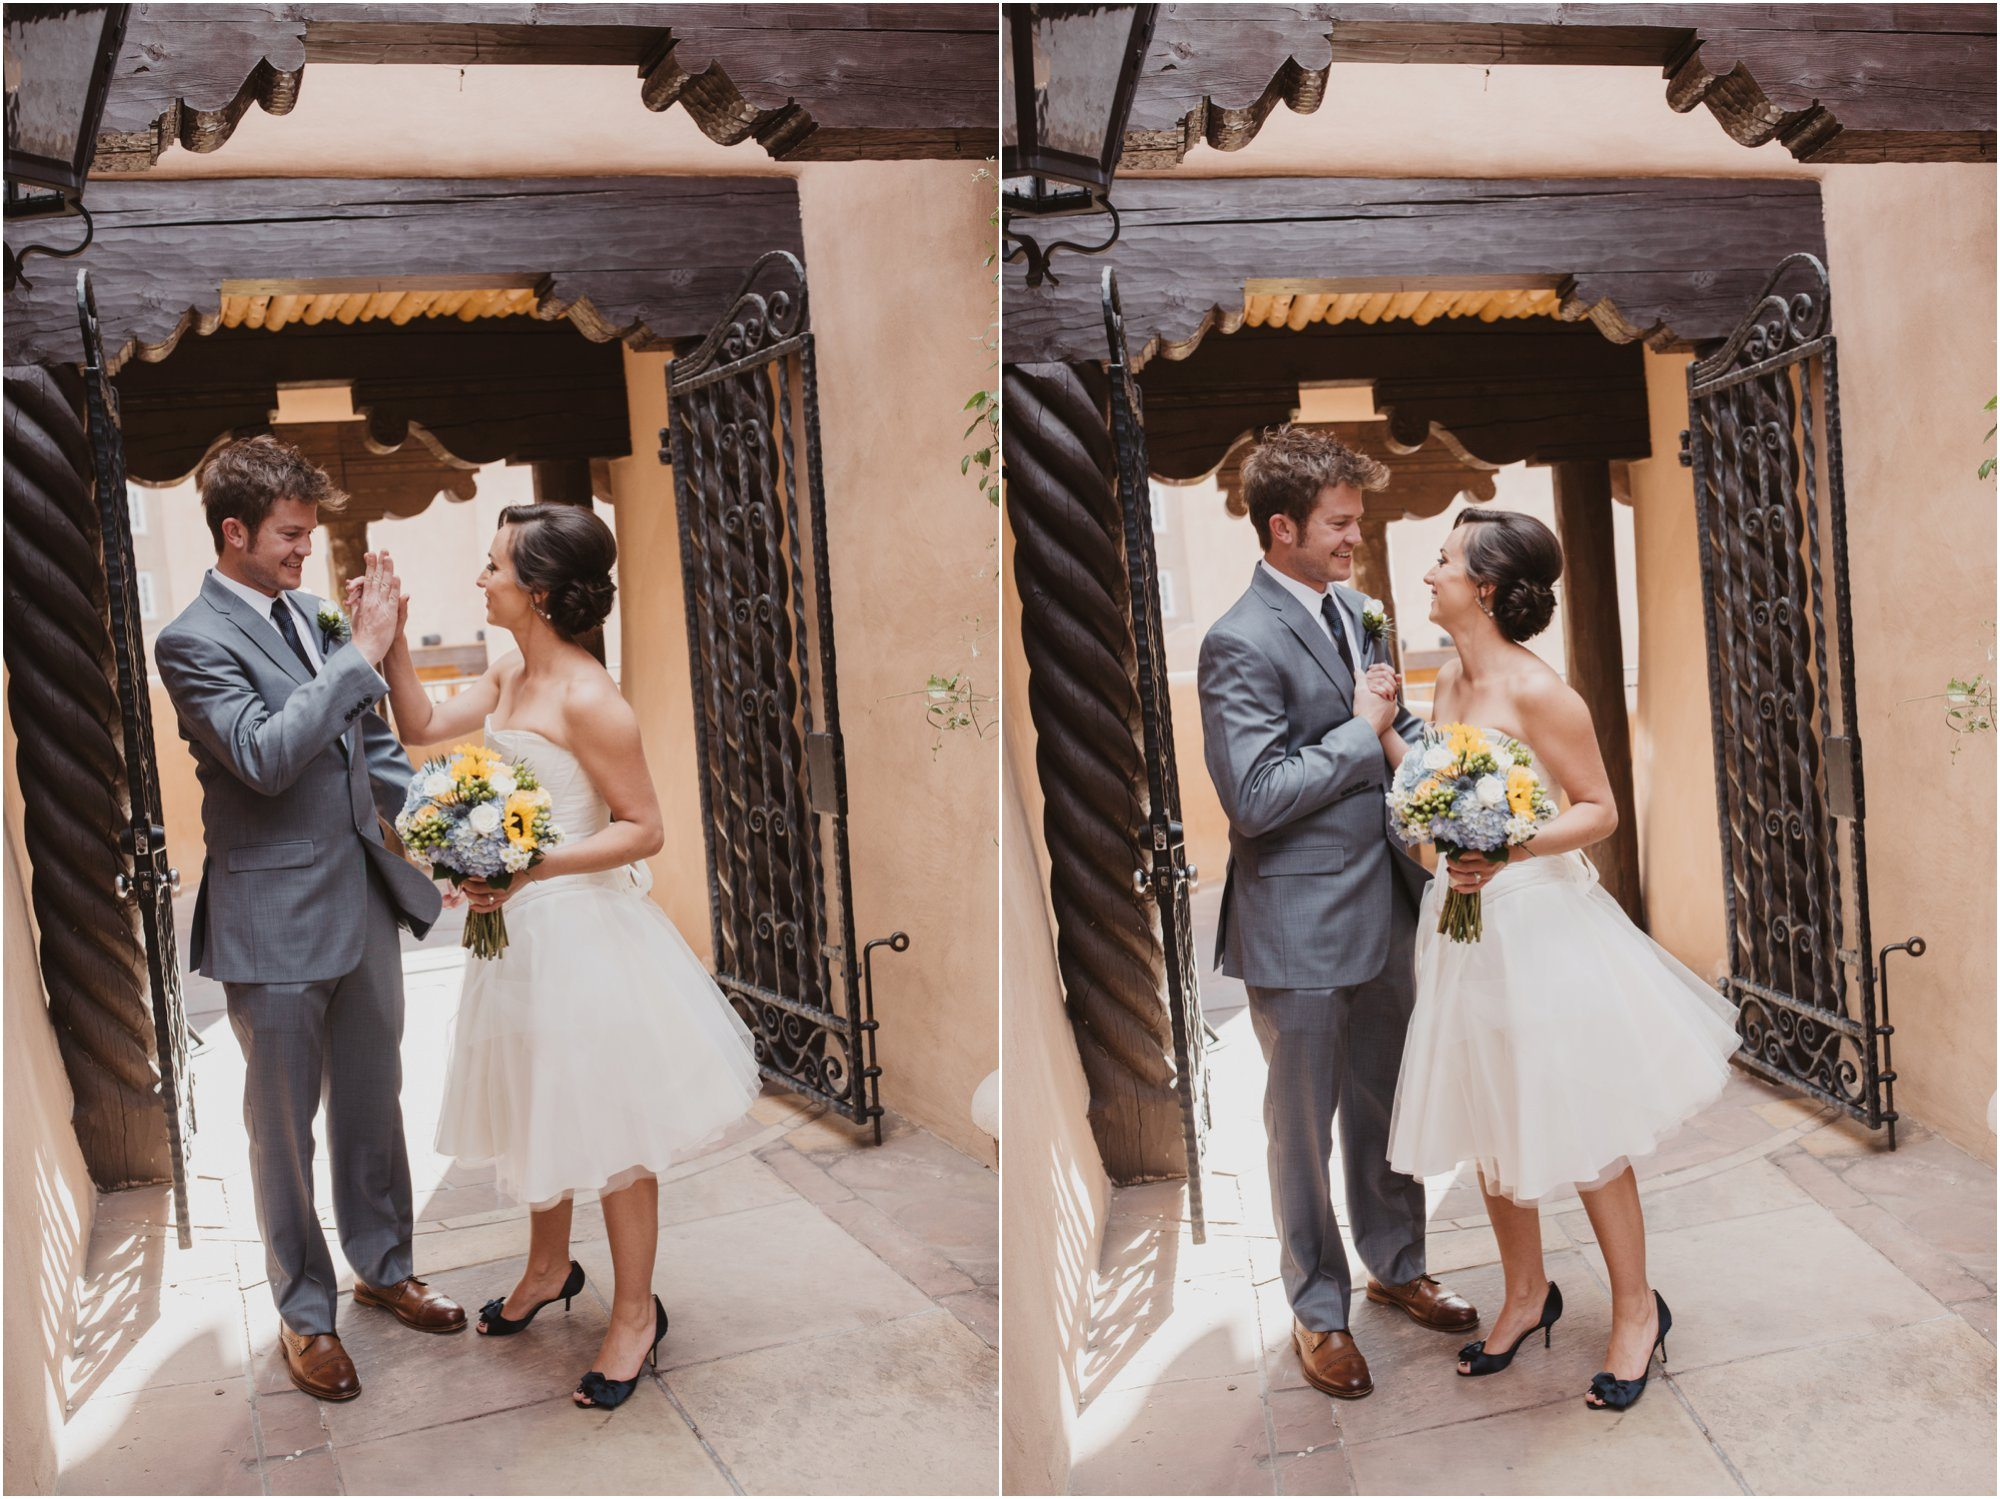 Santa Fe Wedding Photographer, Albuquerque wedding photographer, La Fonda Wedding pictures and photos